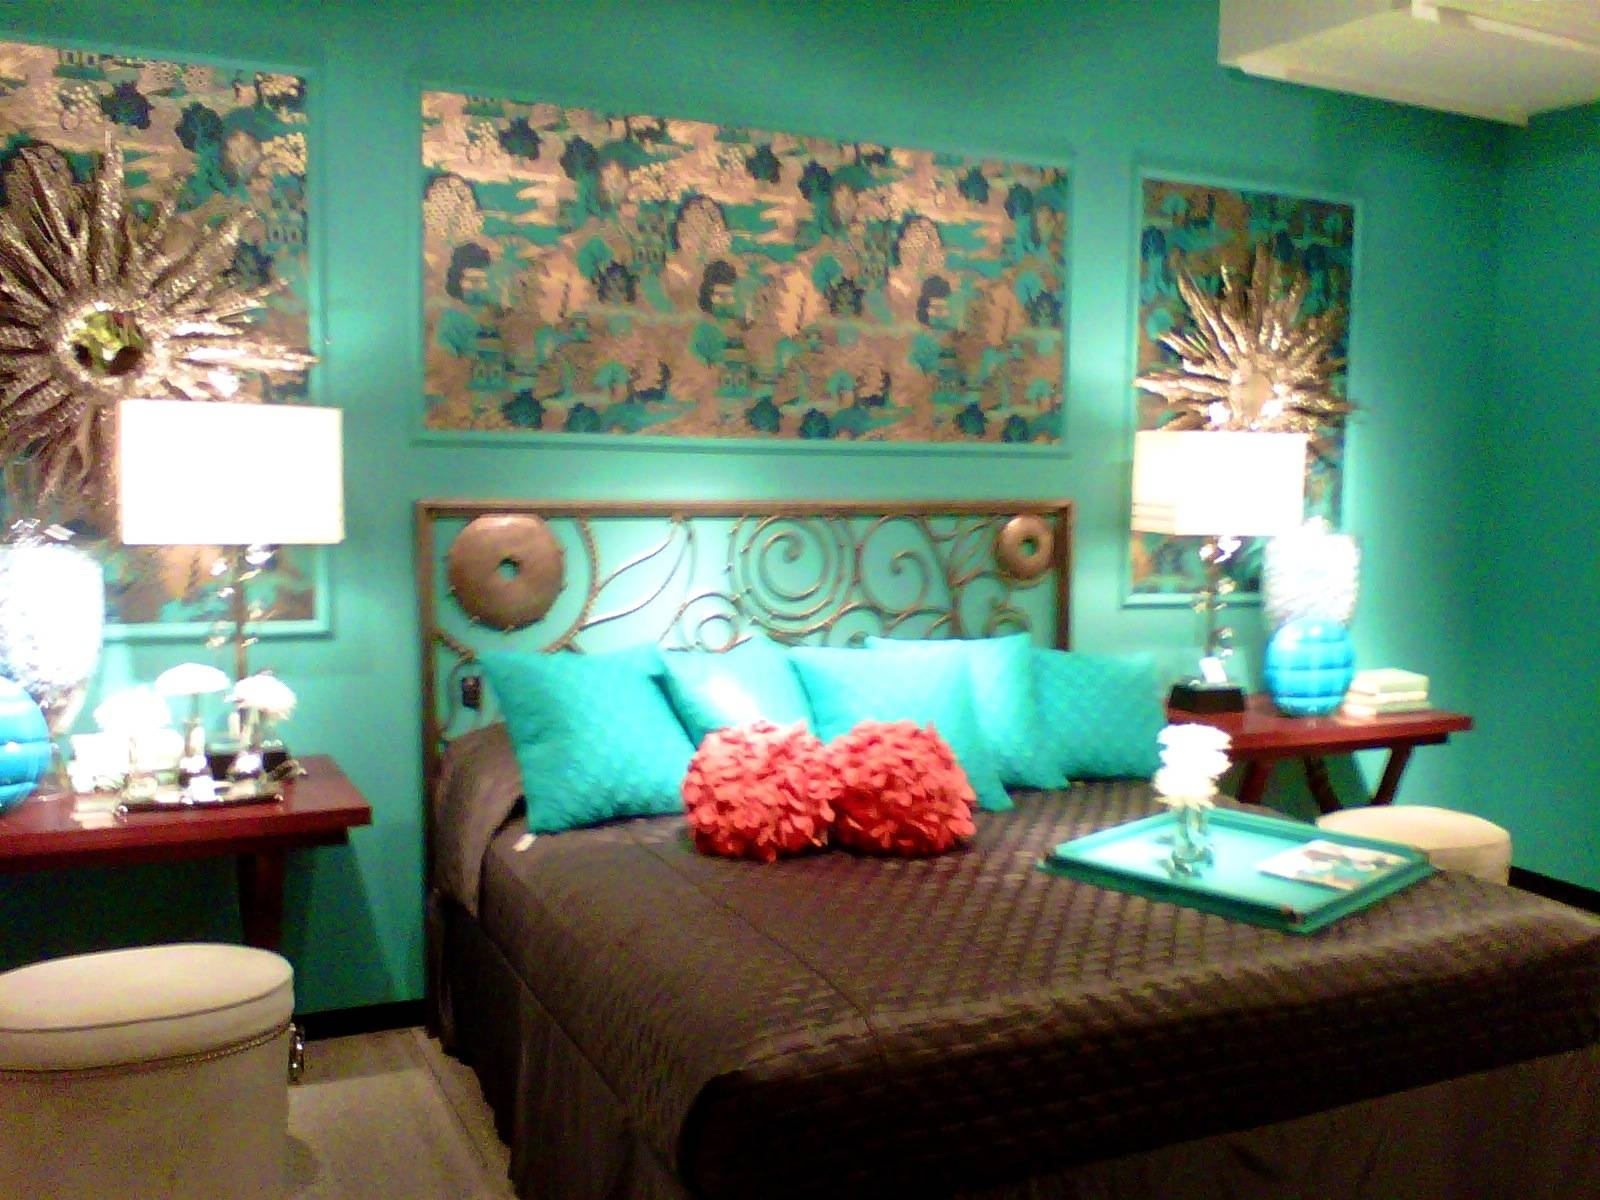 Bathroom : Interesting Living Room Decoration Ideas Delightful Throughout Most Popular Turquoise And Brown Wall Art (View 12 of 25)